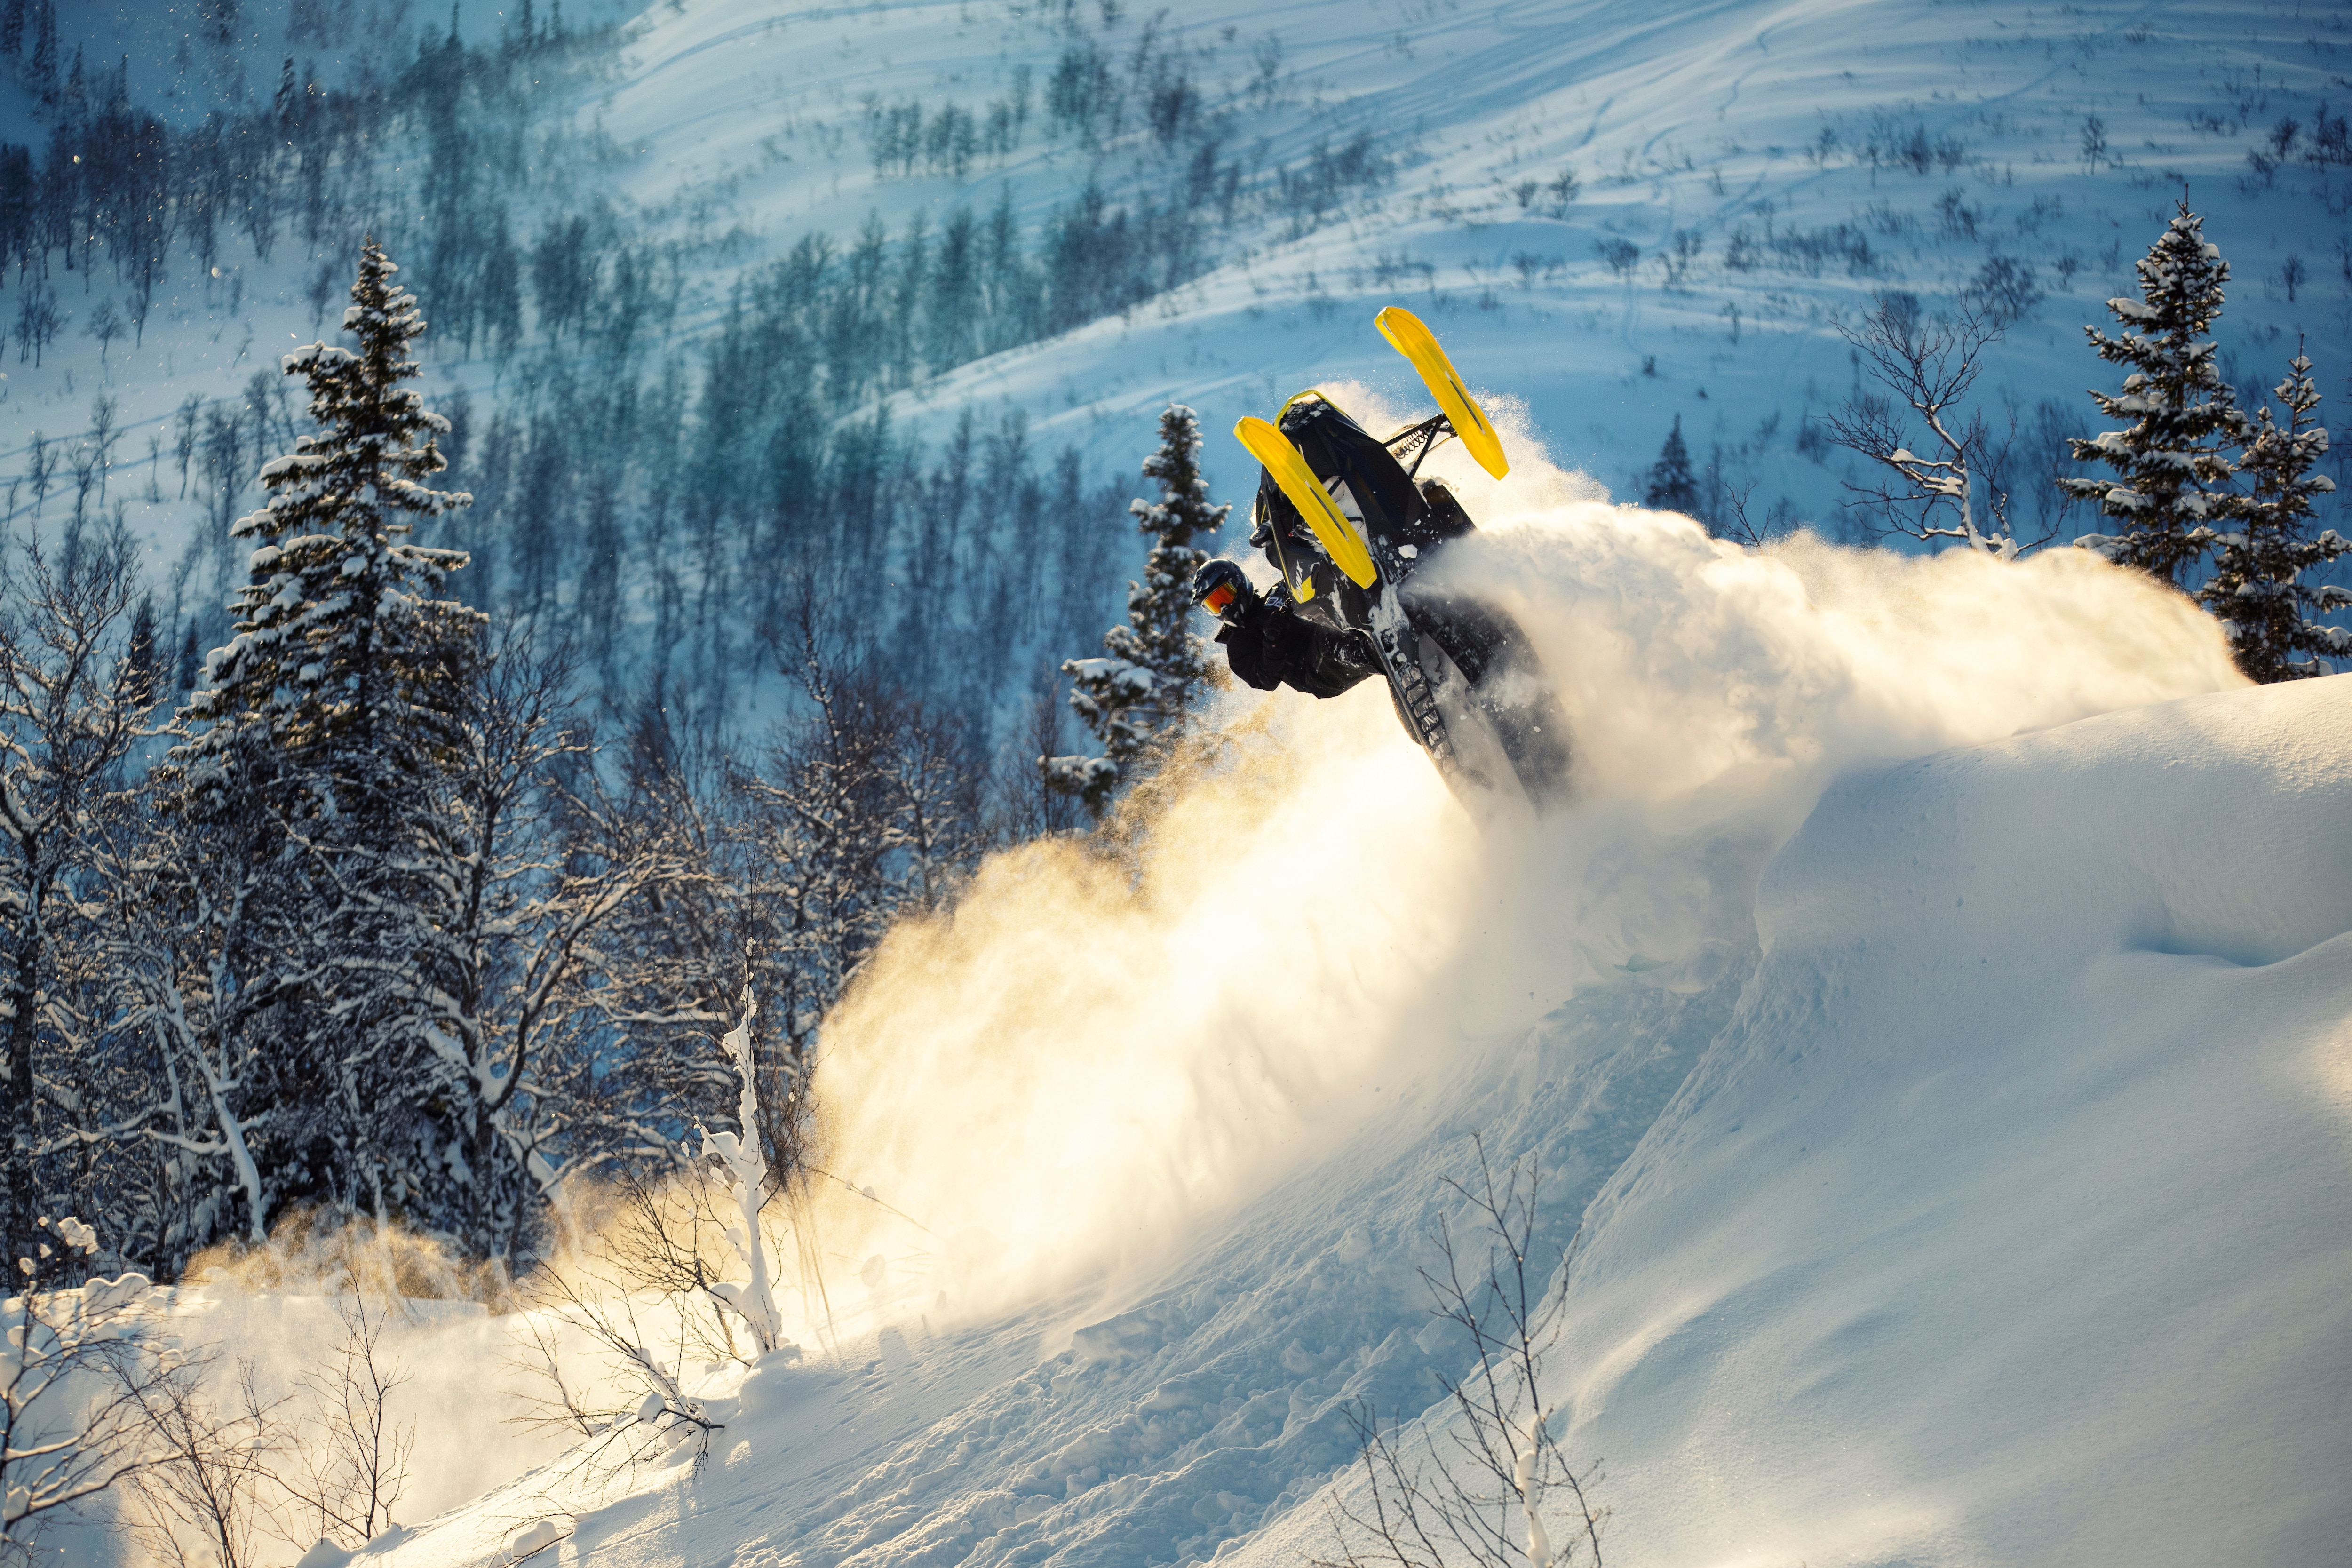 man jumping in snow with Lynx snowmobile